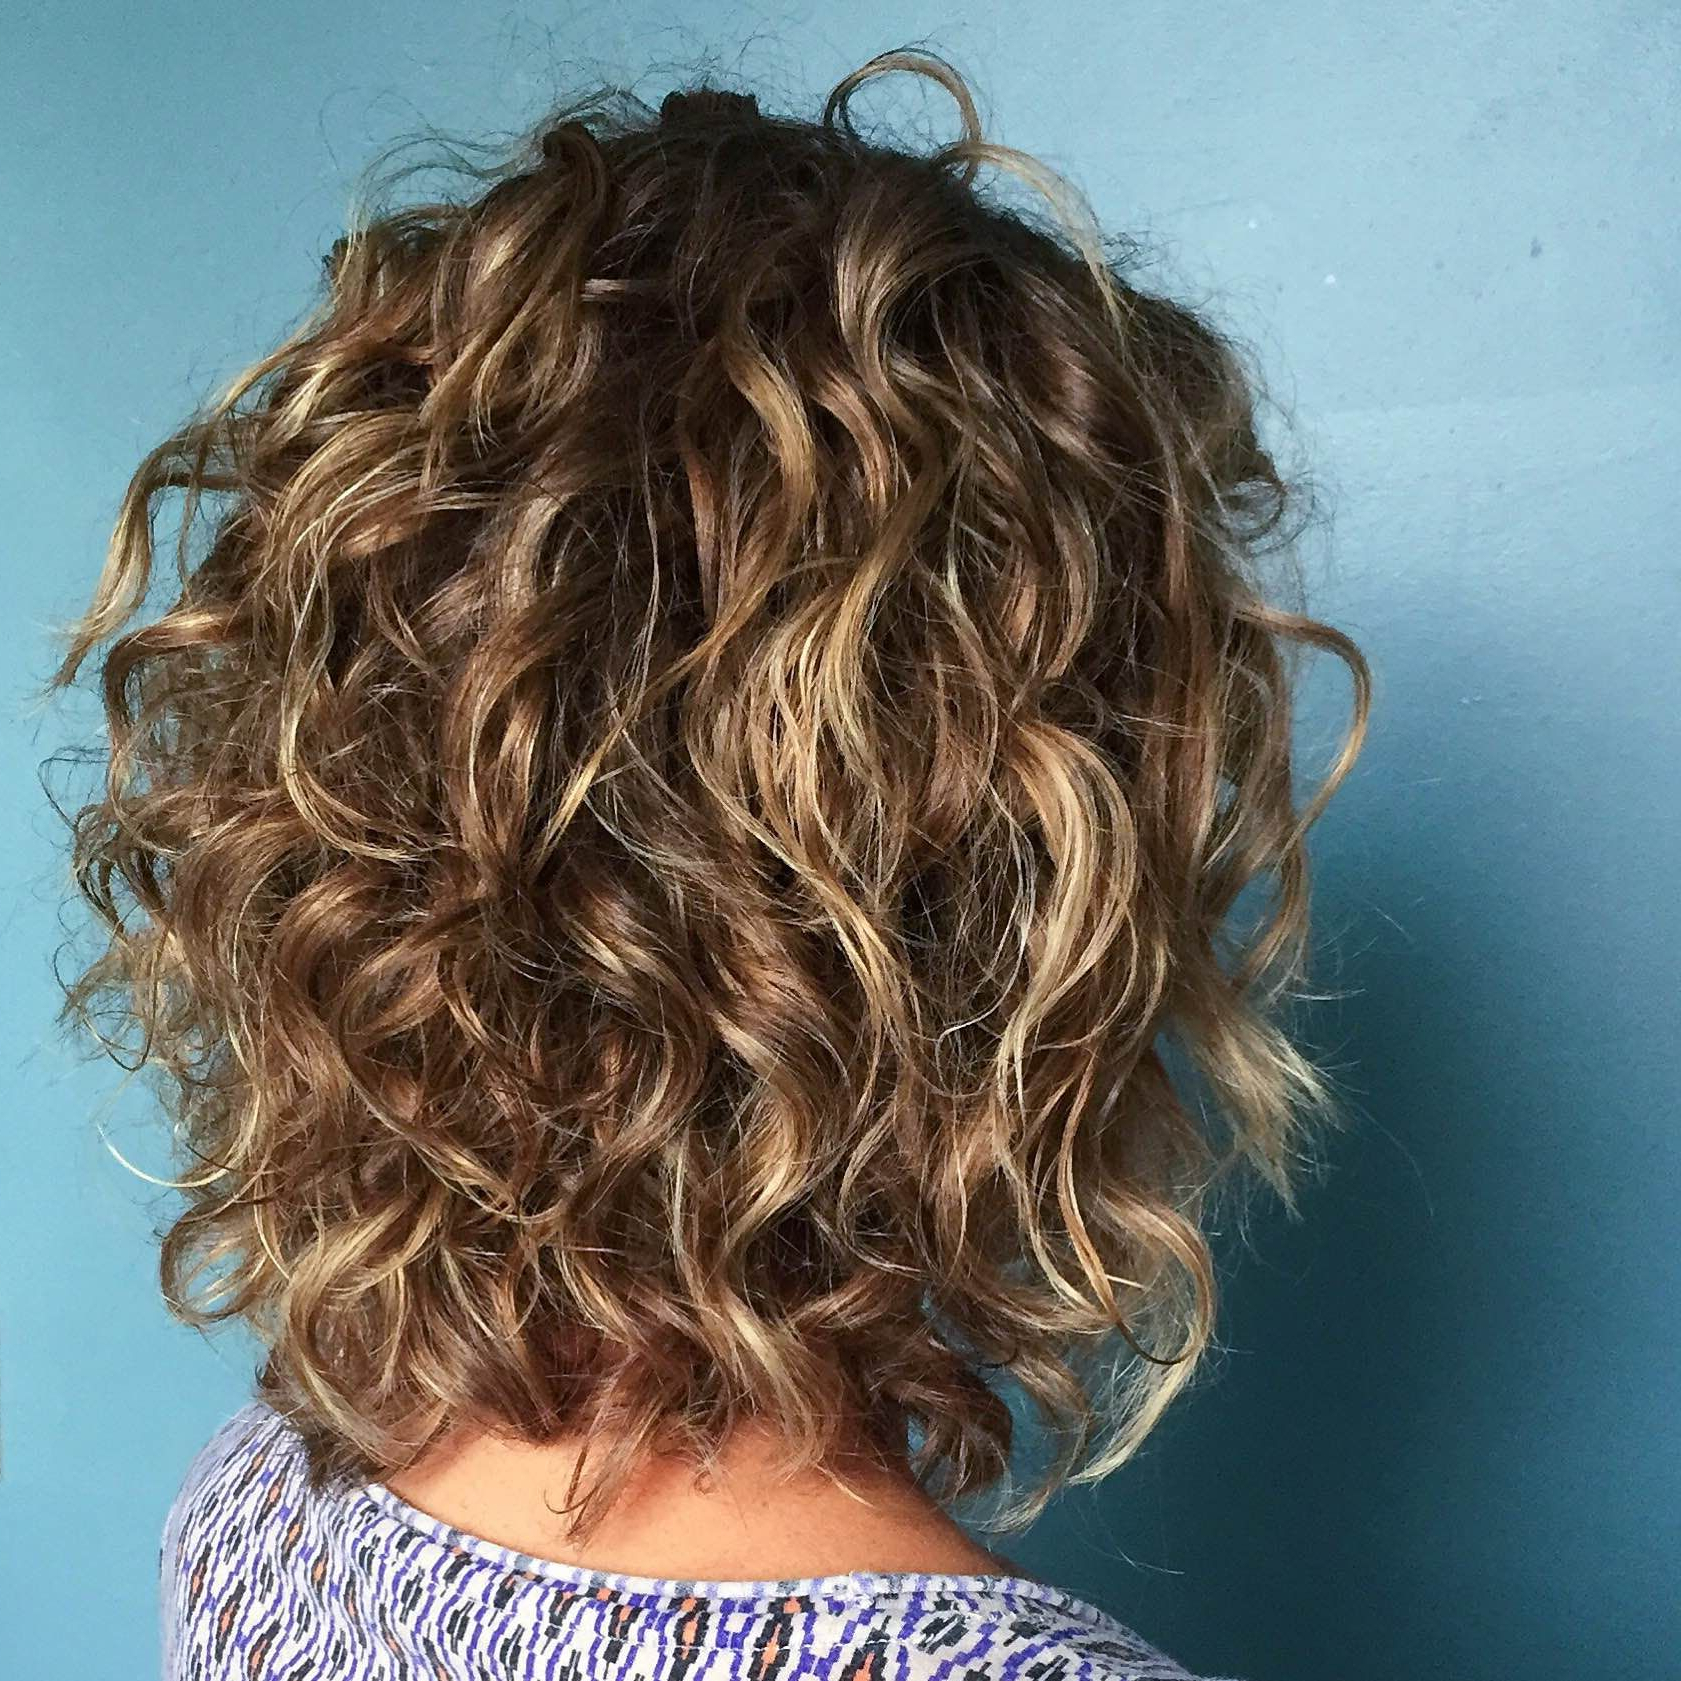 54 Nice Cute Curly Hairstyles For Medium Hair 2017 | Curly Hair For Simple Short Hairstyles With Scrunched Curls (View 7 of 25)